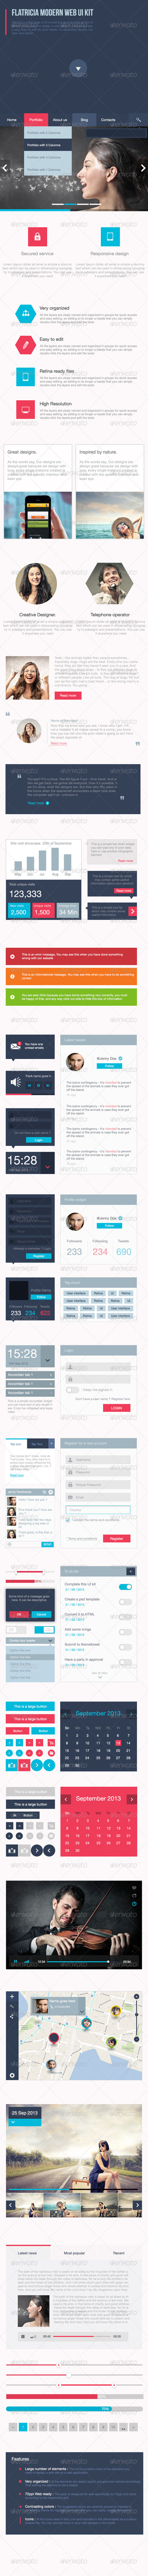 GraphicRiver Flatricia Flat and Modern Web UI Kit 5678354